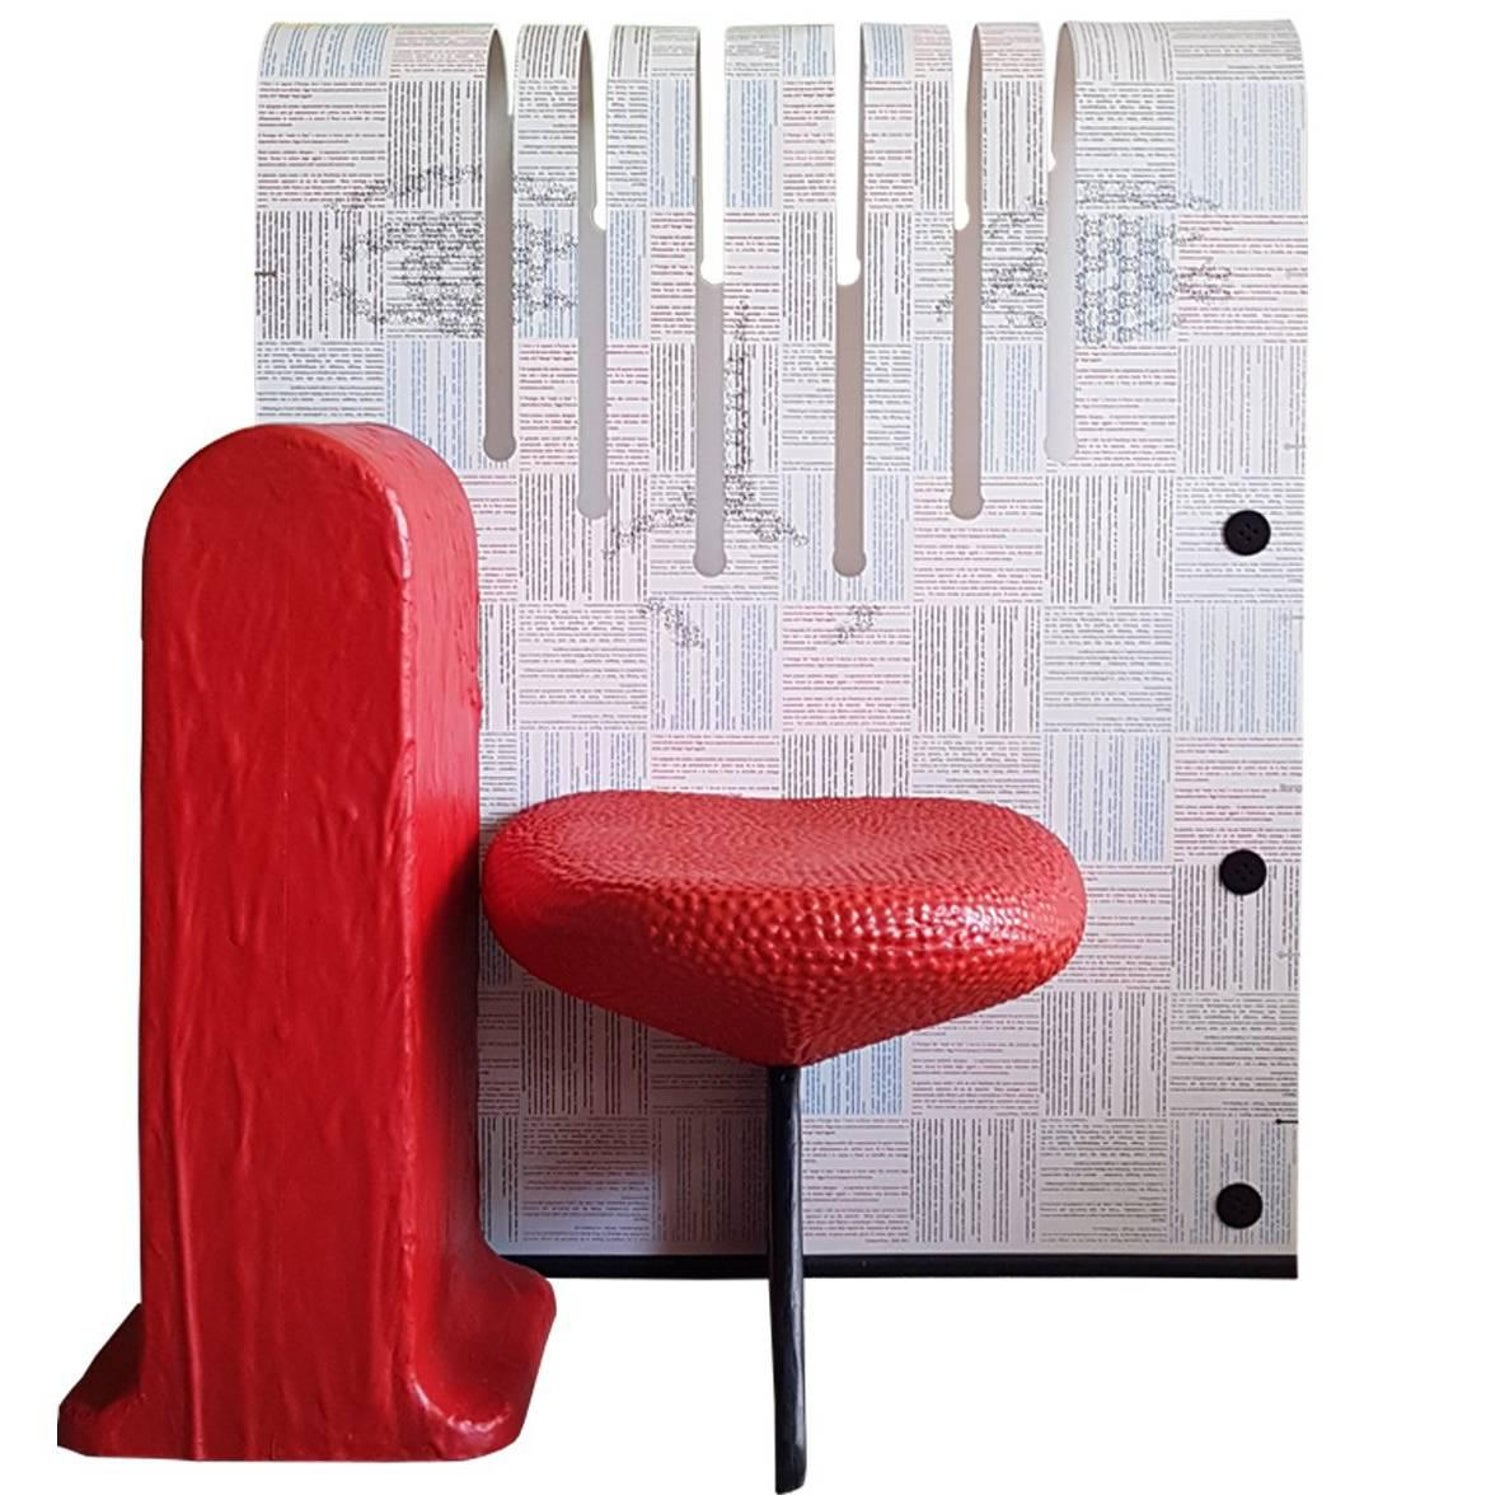 Contemporary Italian Chair Gaetano Pesce Plastic Rubber Red White Post Modern